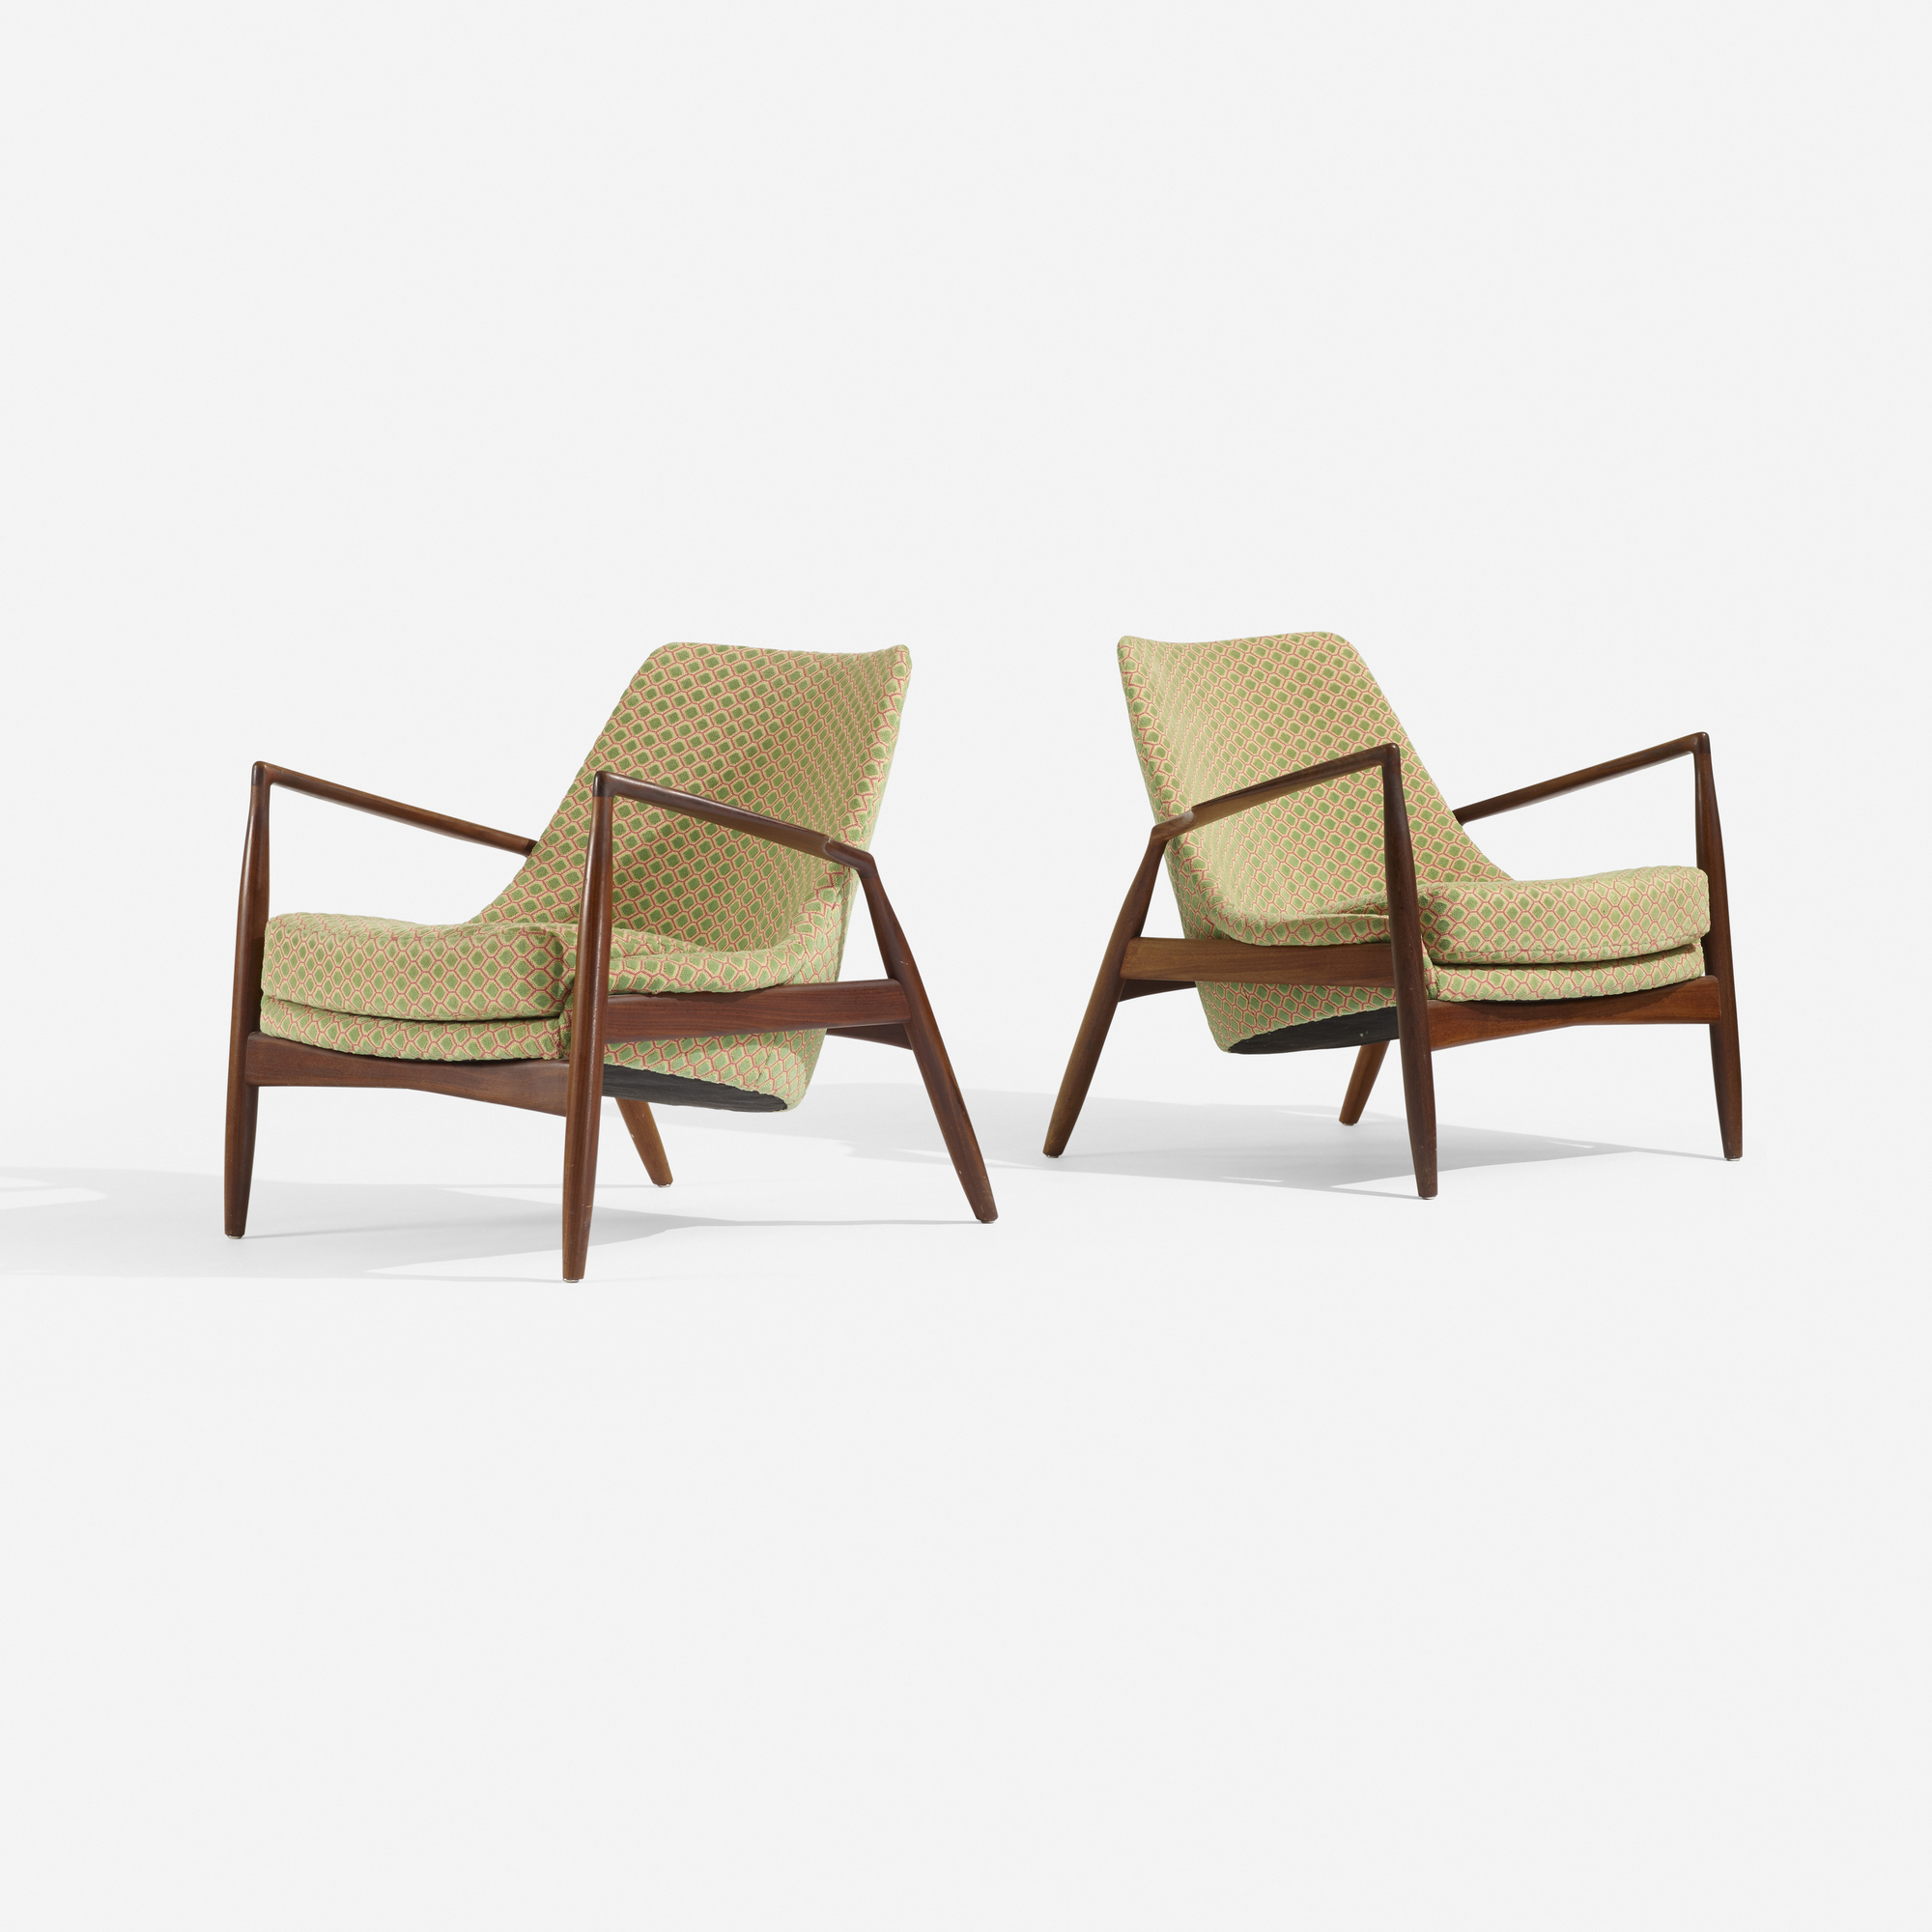 268: Ib Kofod-Larsen / lounge chairs, pair (1 of 4)